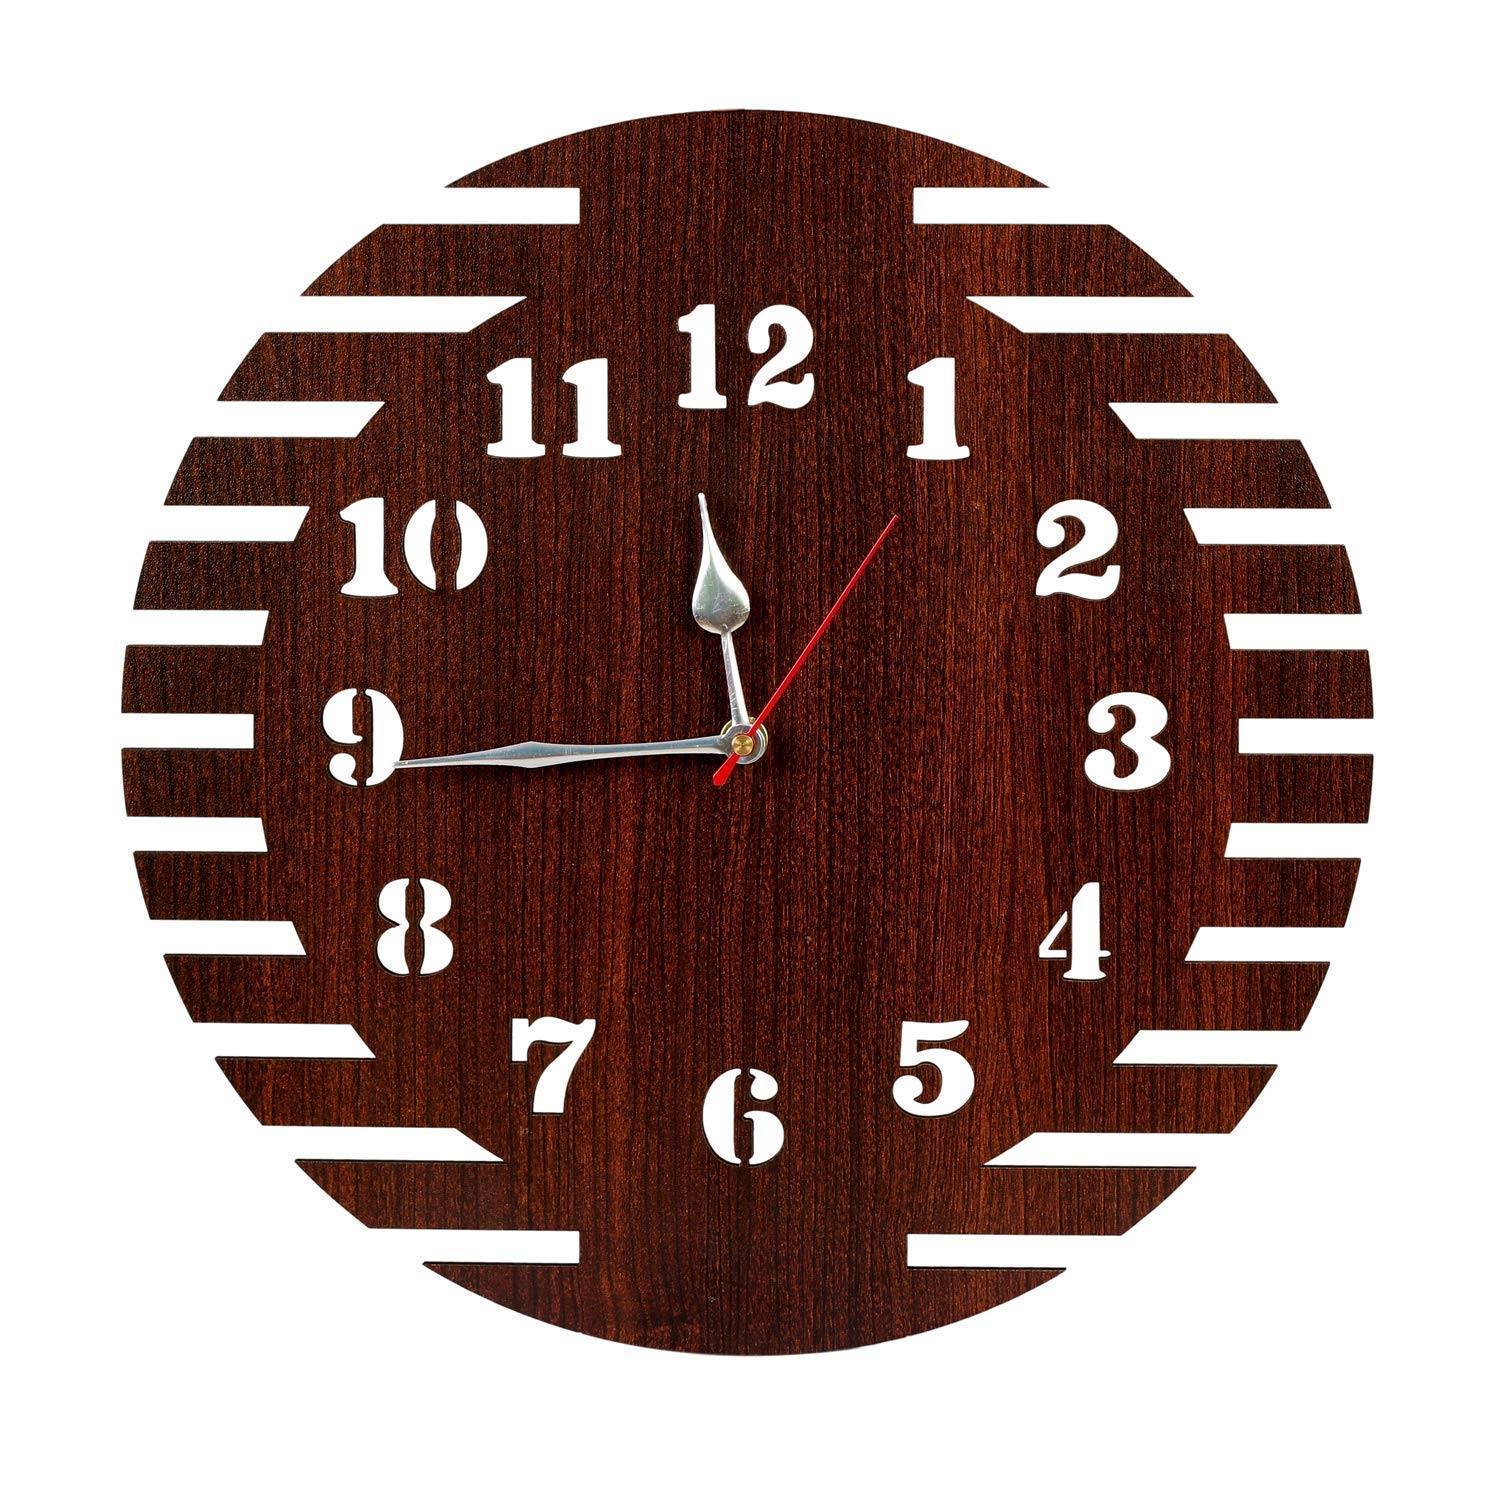 Bhune Designed Round Wooden Wall Clock for Home, Kitchen, Living